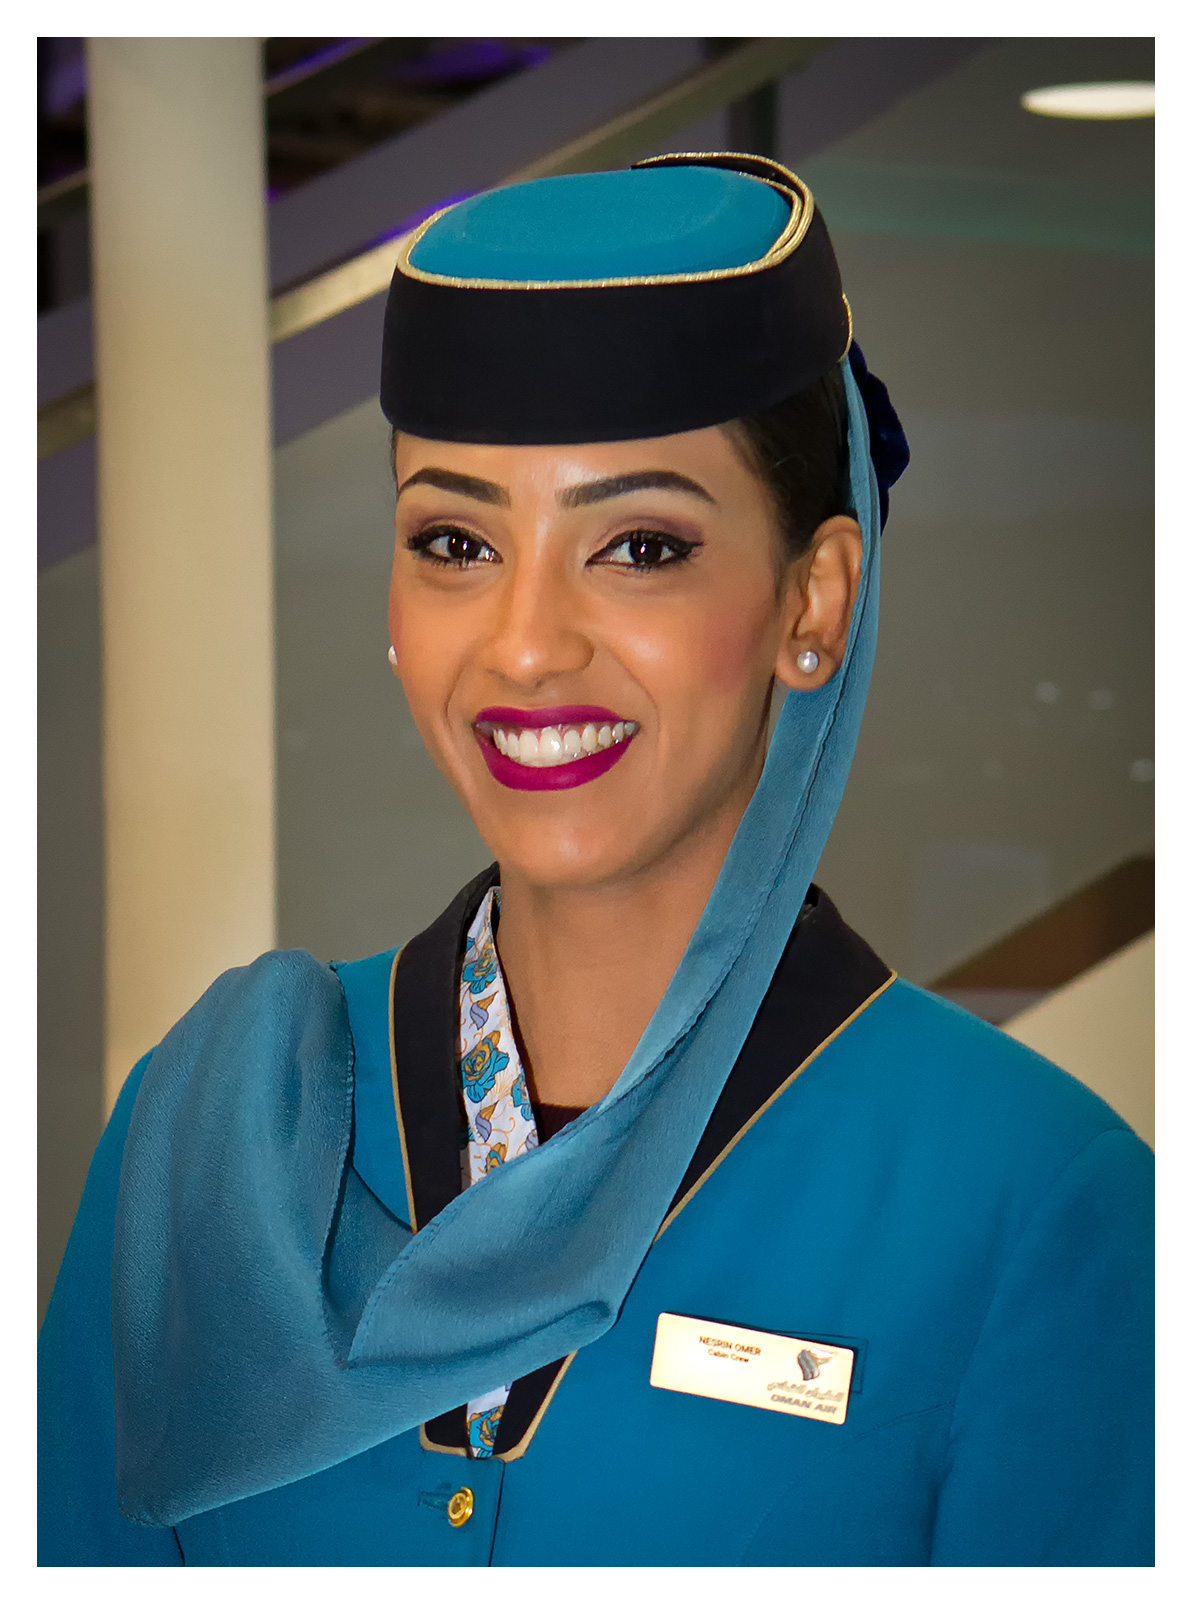 Portrait photography: Oman Airlines Hostess